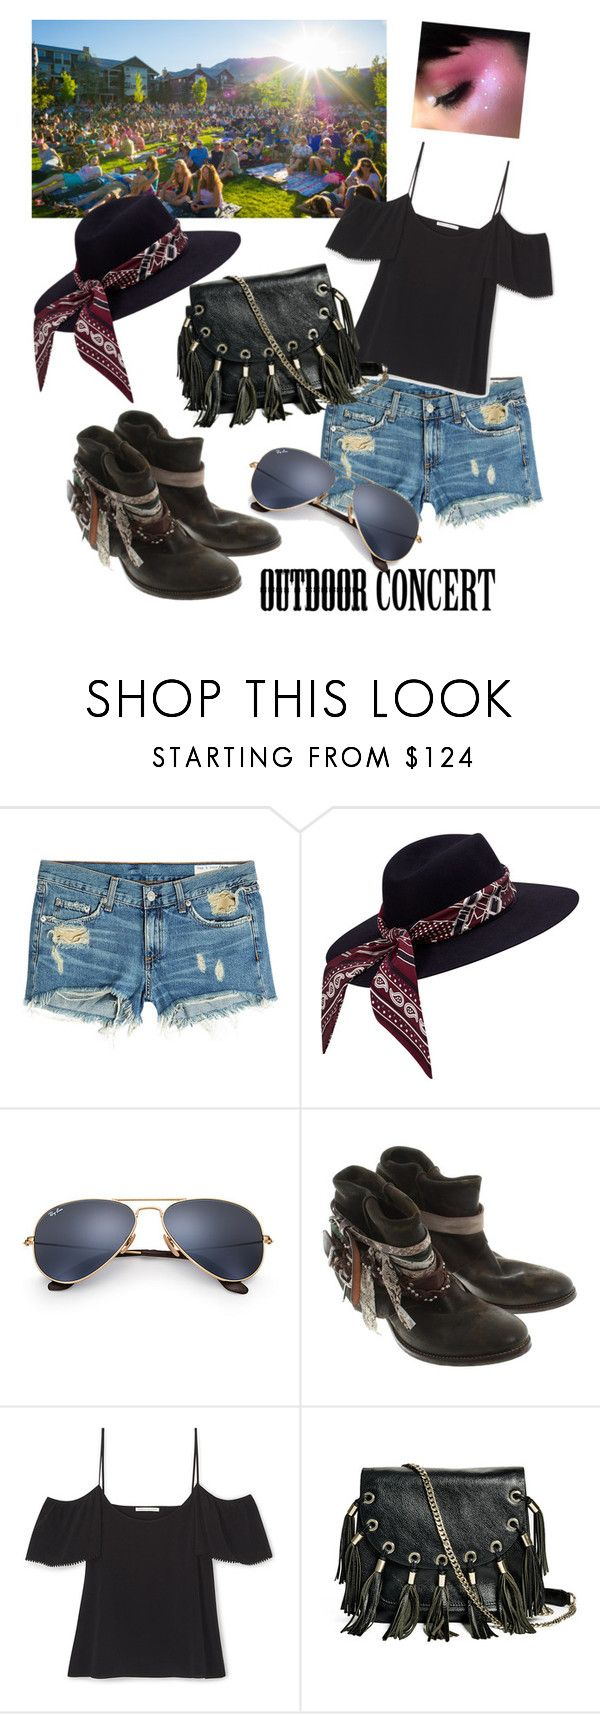 """Outdoor concert"" by tattooedmum on Polyvore featuring rag & bone, Ray-Ban, Russell & Bromley, GUESS by Marciano, 60secondstyle and outdoorconcerts"